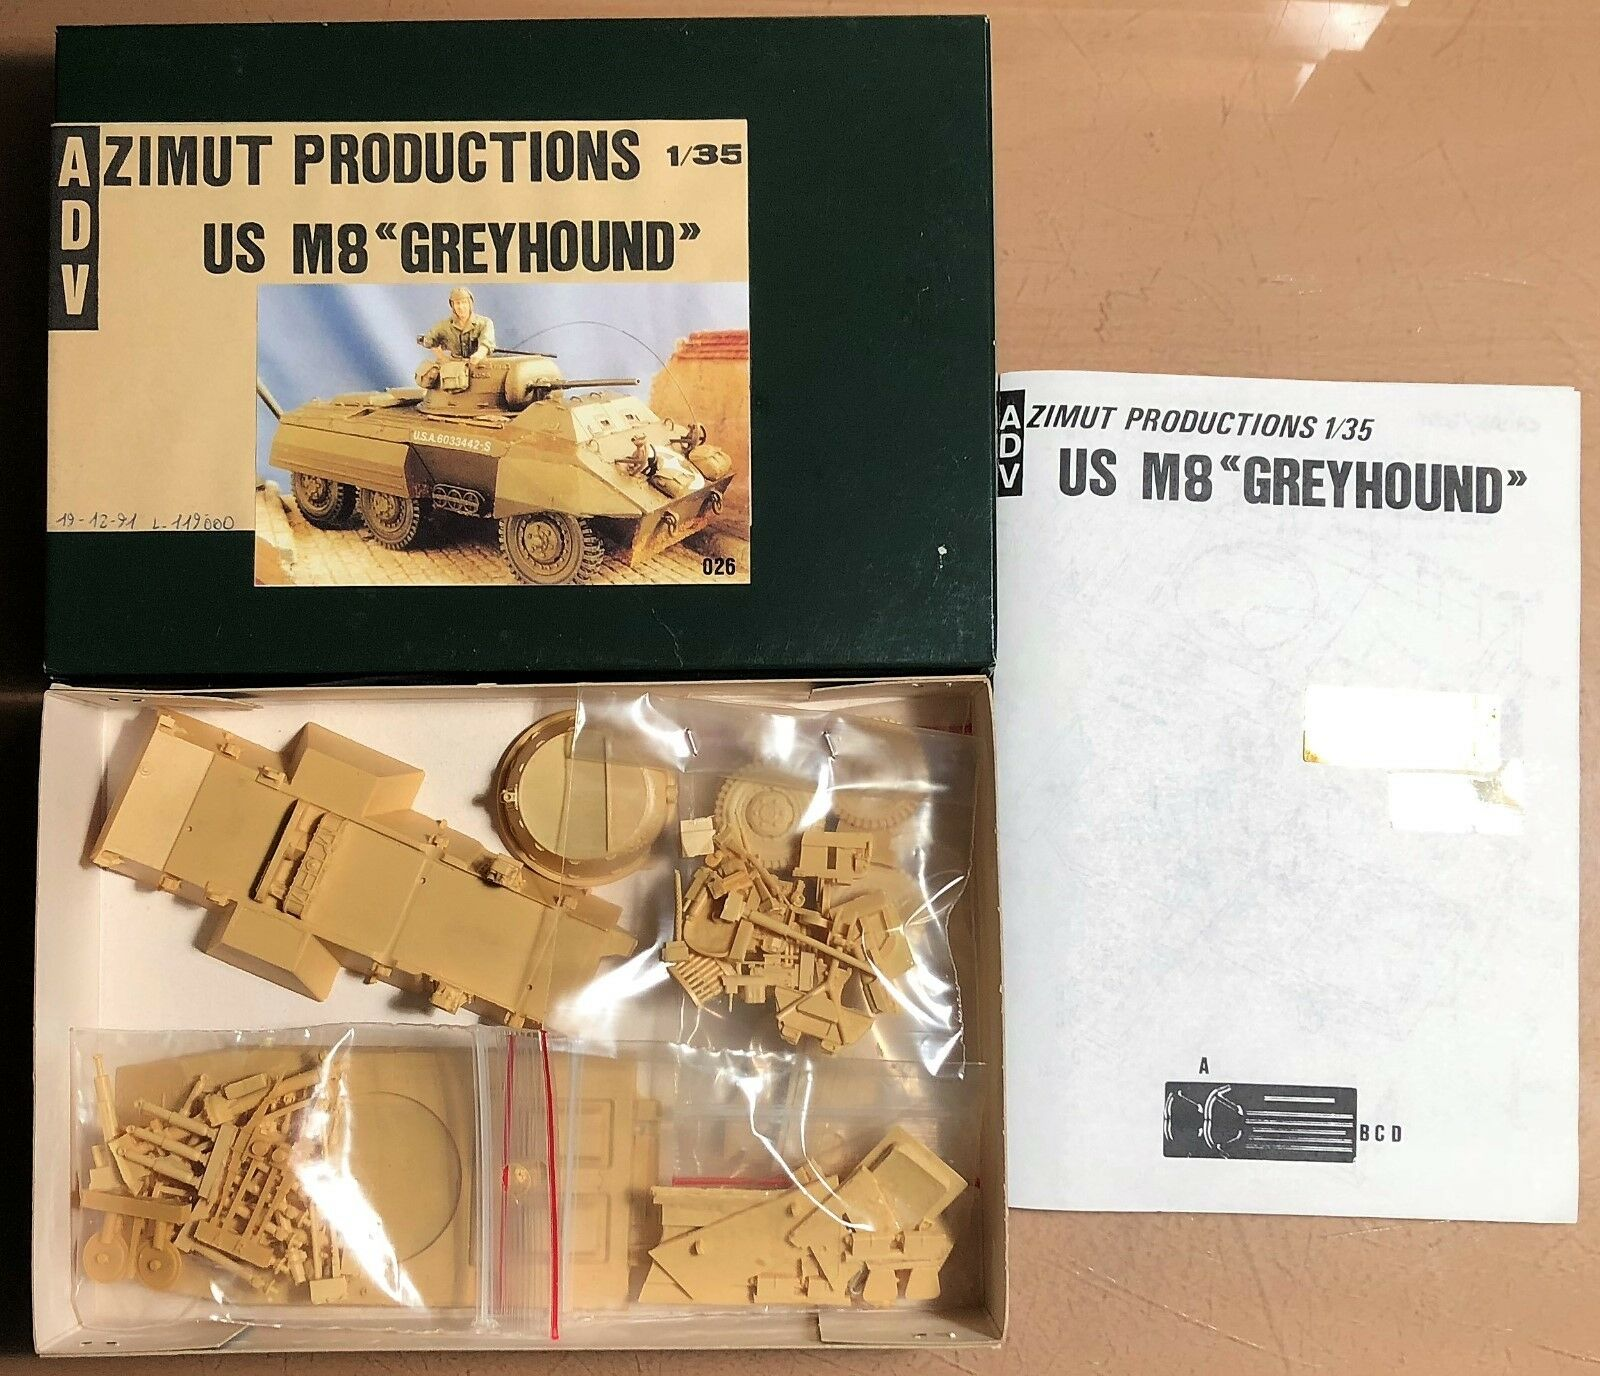 ADV AZIMUT PRODUCTION PRODUCTION PRODUCTION 35026 - US M8  GREYHOUND  - 1 35 RESIN KIT b91232